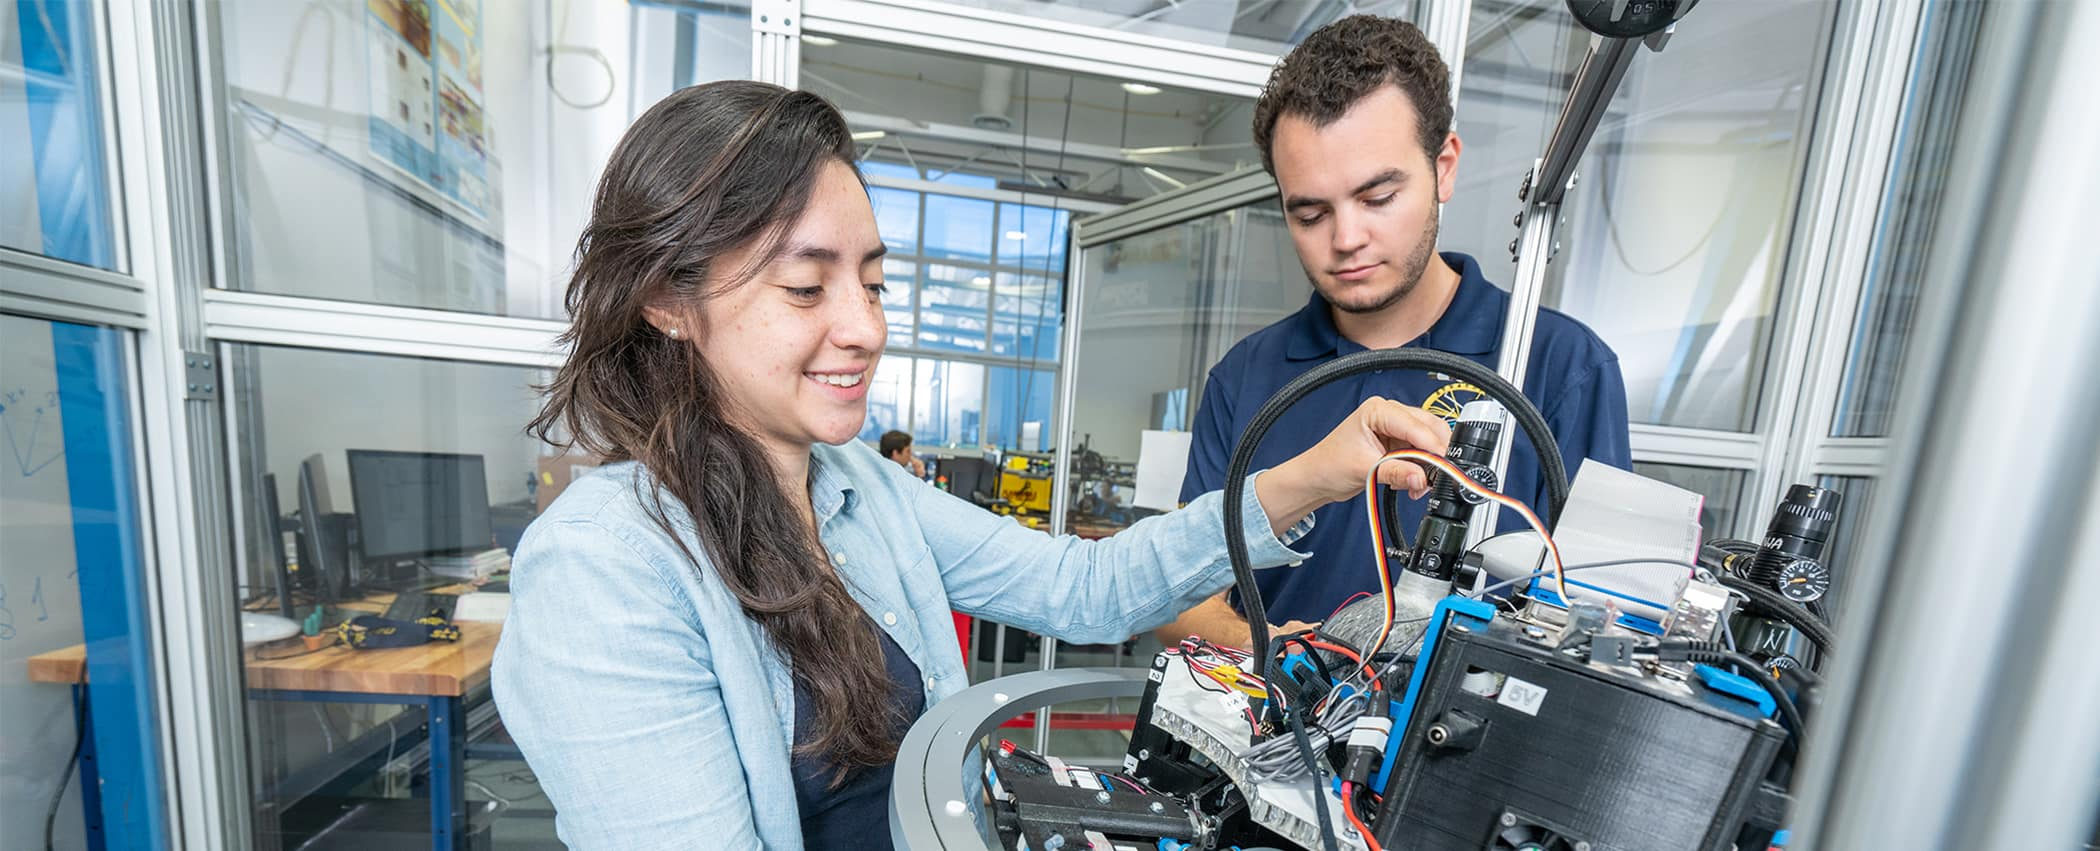 Master's Degree in Aerospace Engineering